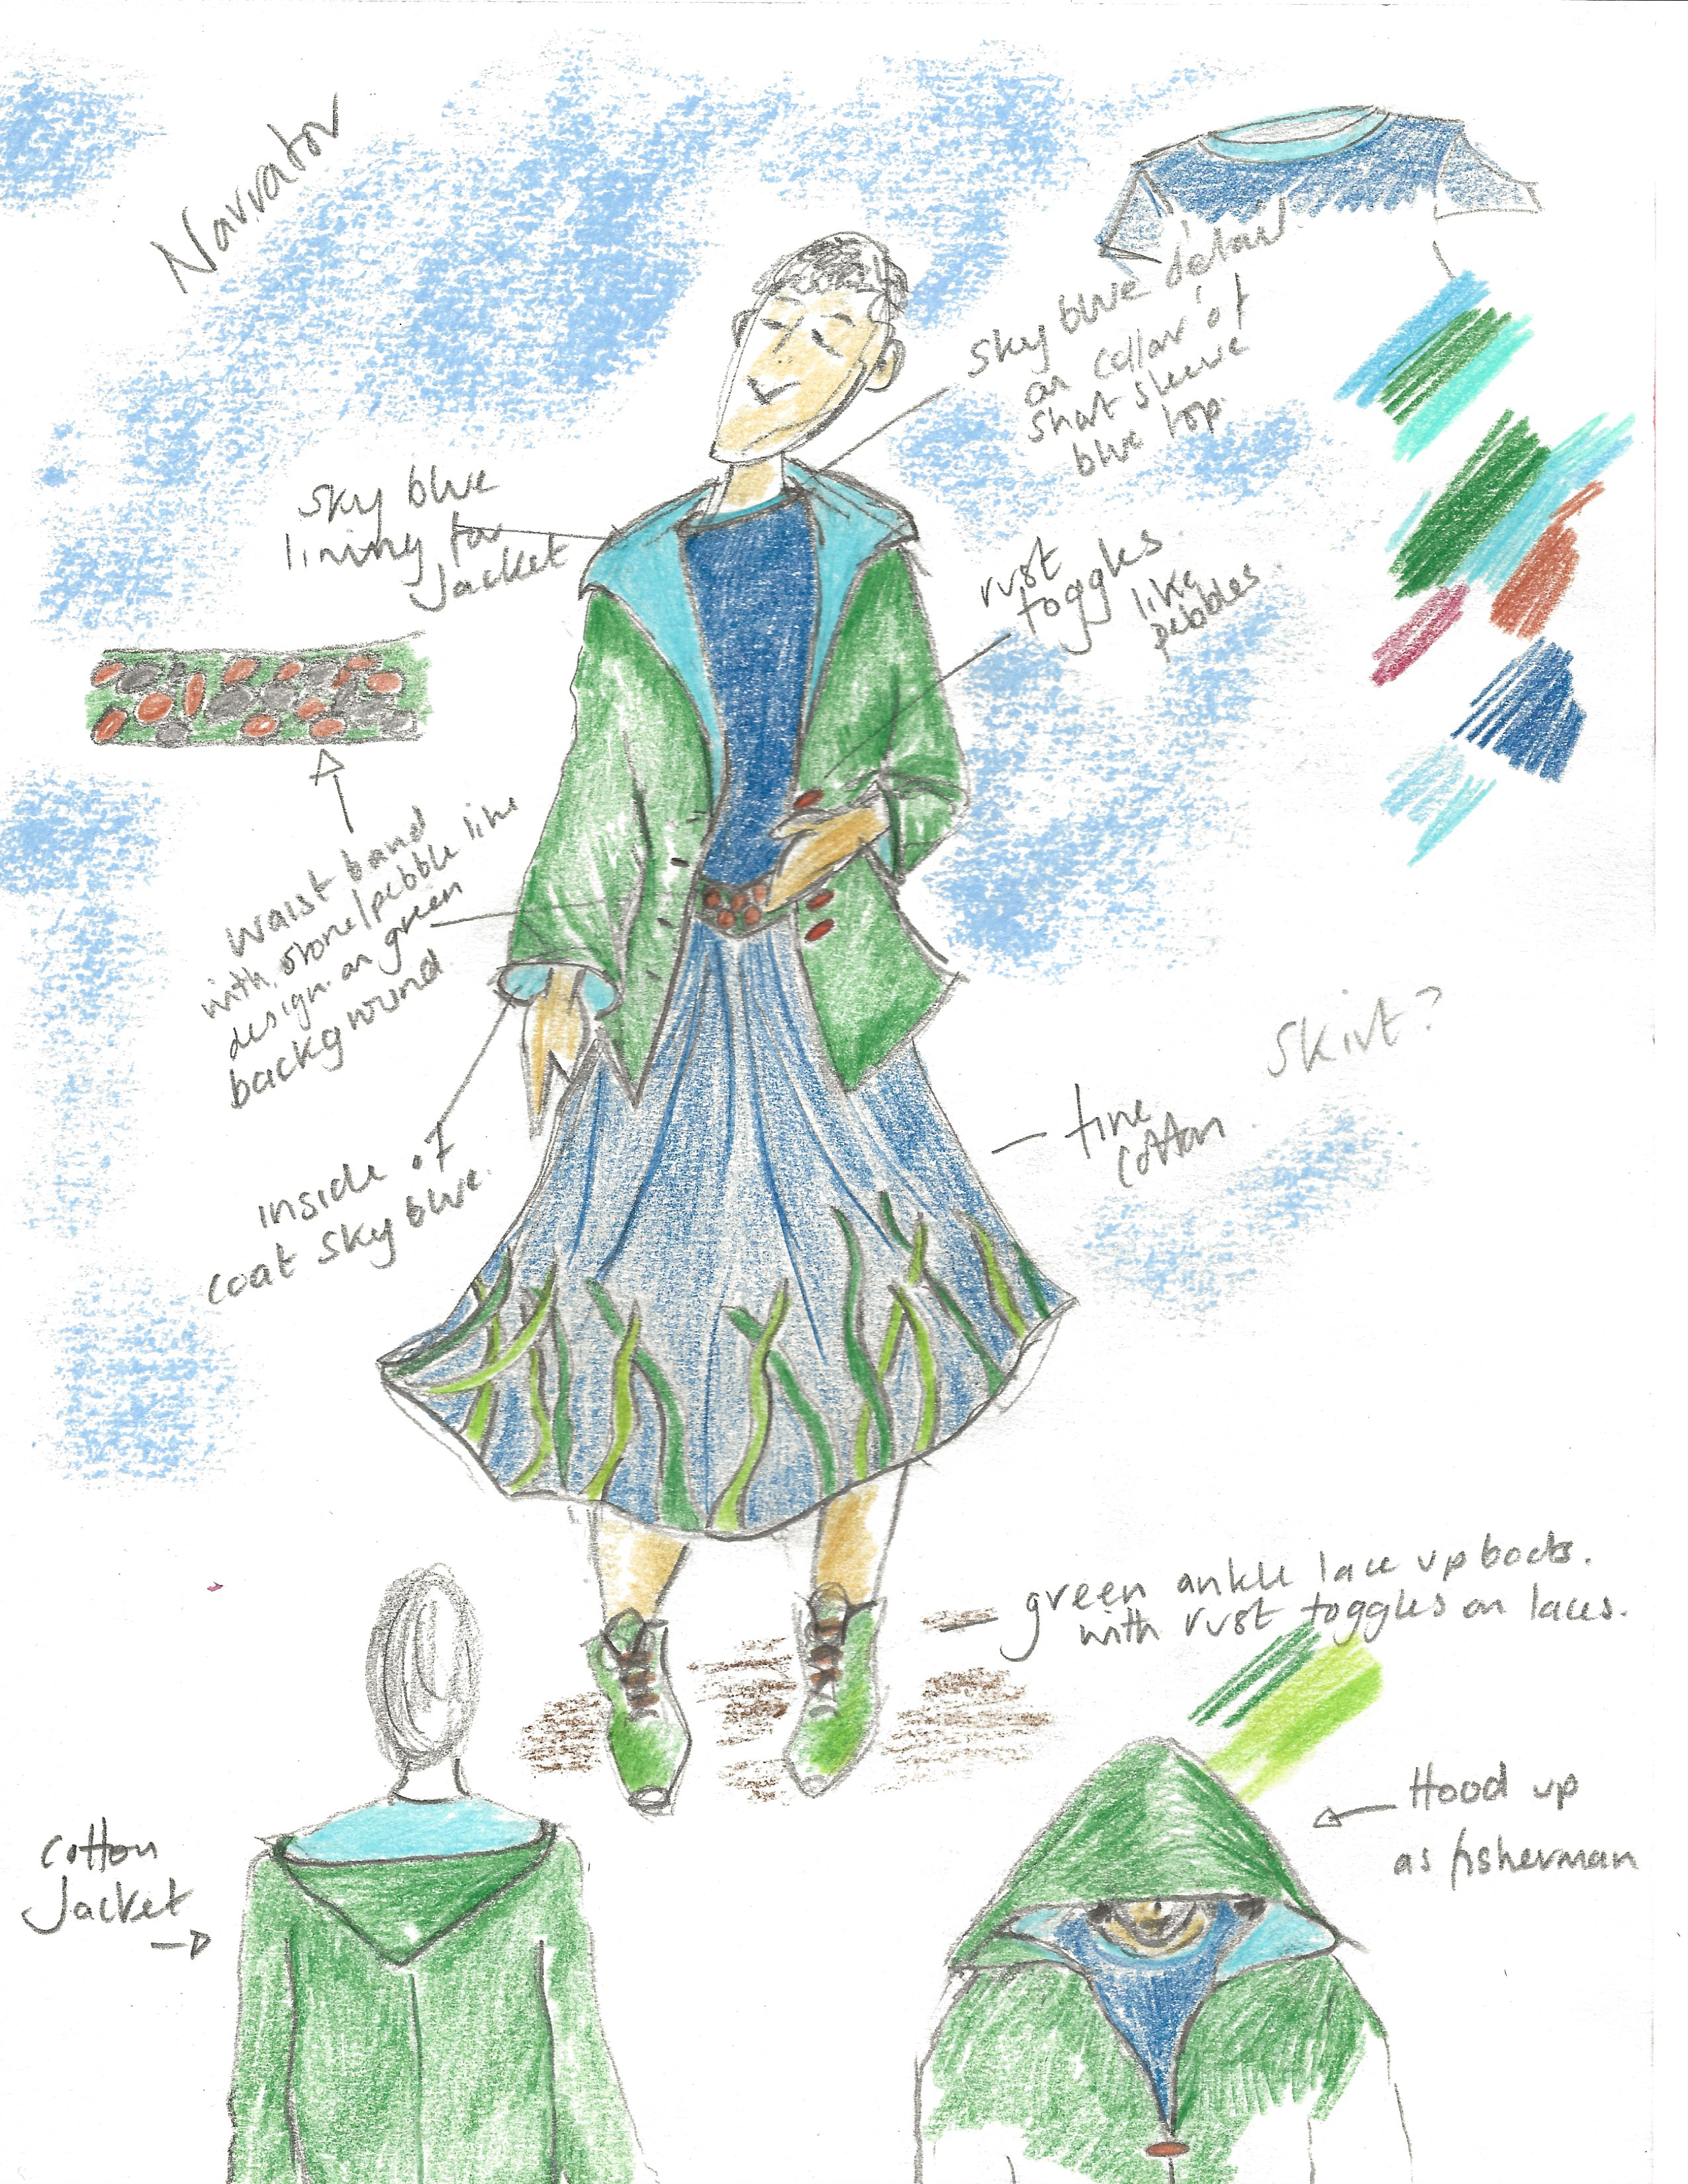 Splash by Extraordinary Bodies - Costume design illustrations by Laura Guthrie - A female figure wearing a floaty blue and green skirt, a green coat with a large hood and blue top.